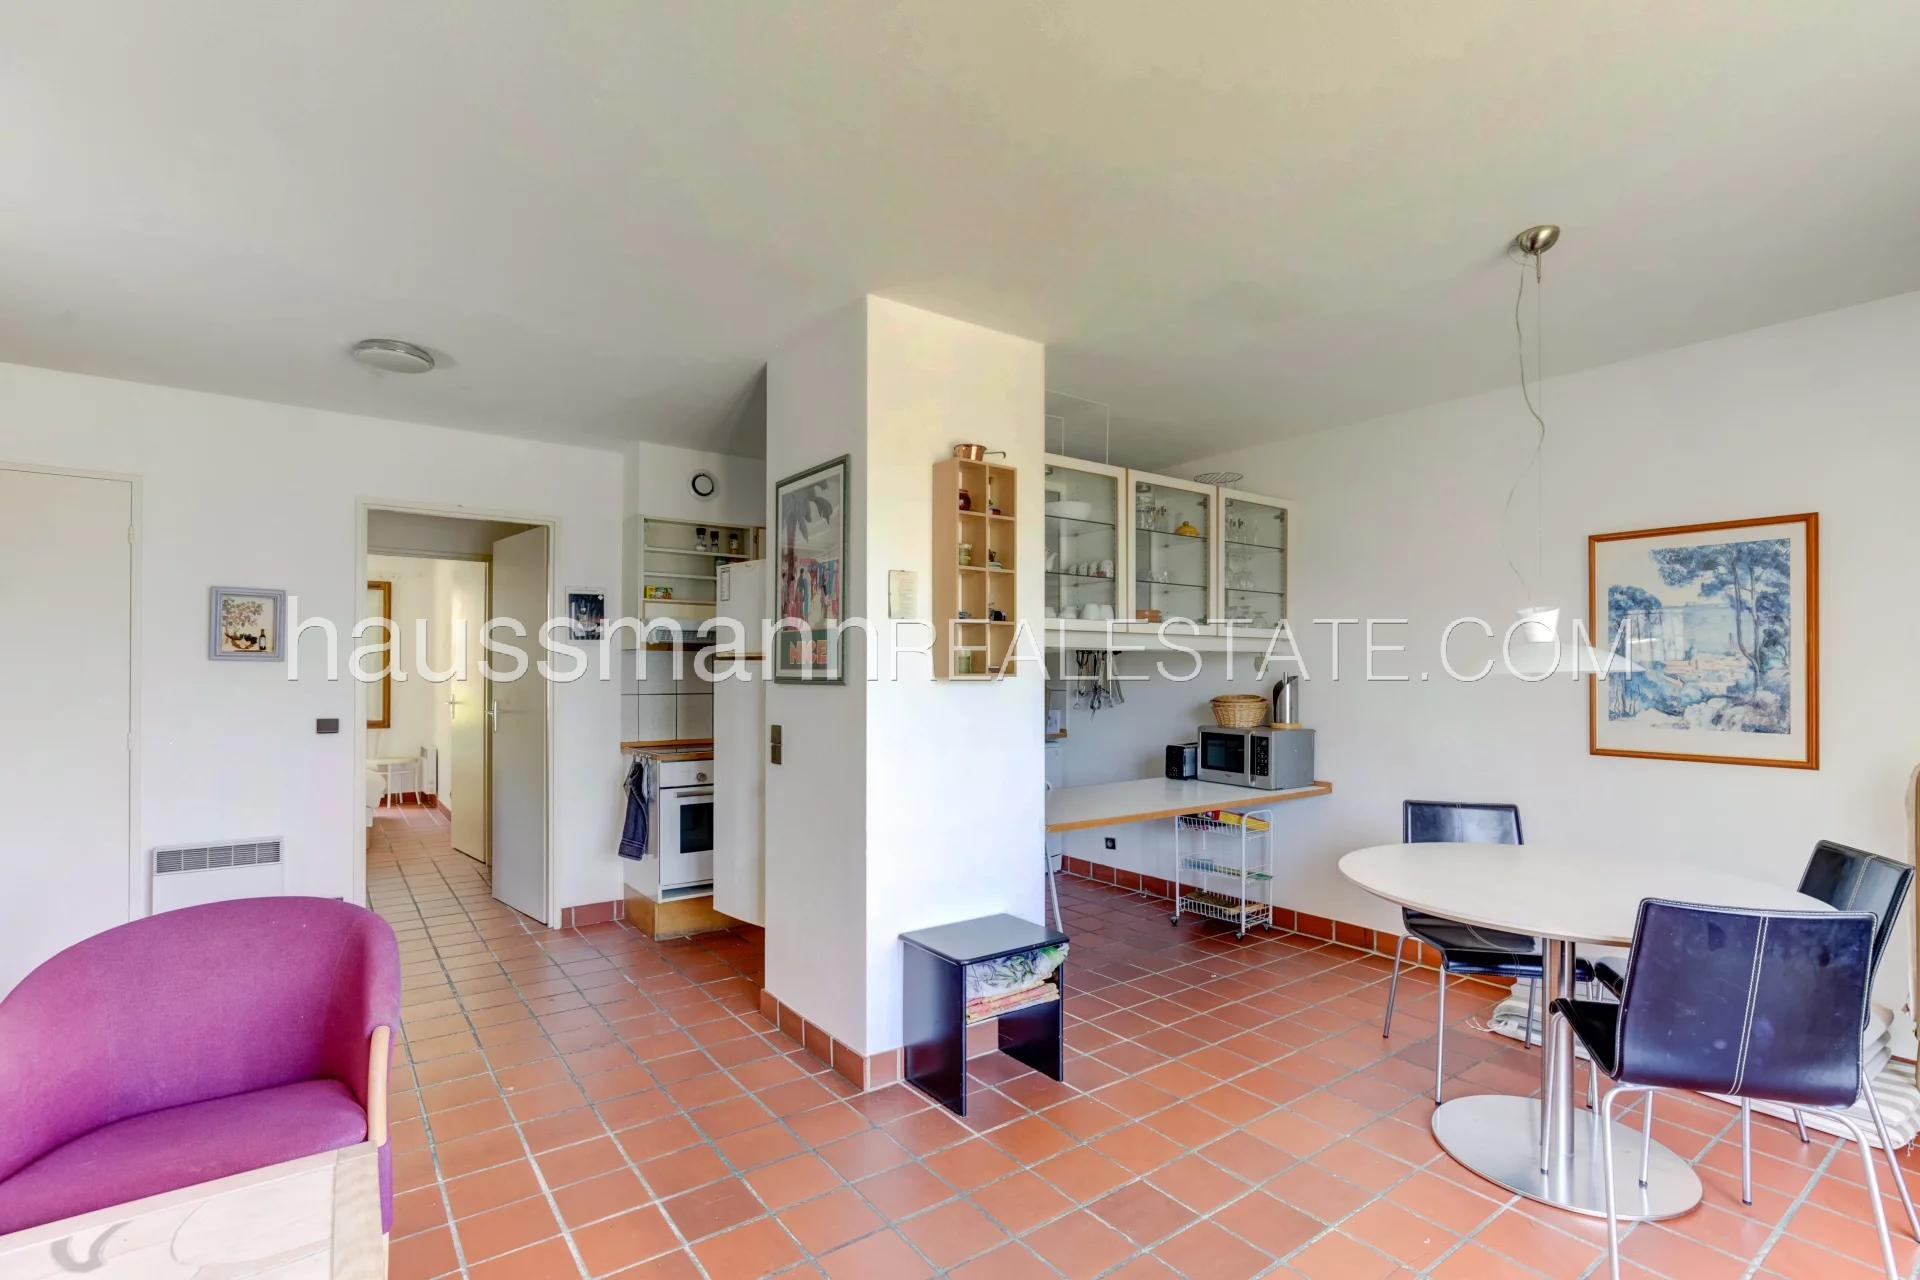 Buying Apartment Le Broc 2 bedrooms flat with panoramic view on the hills